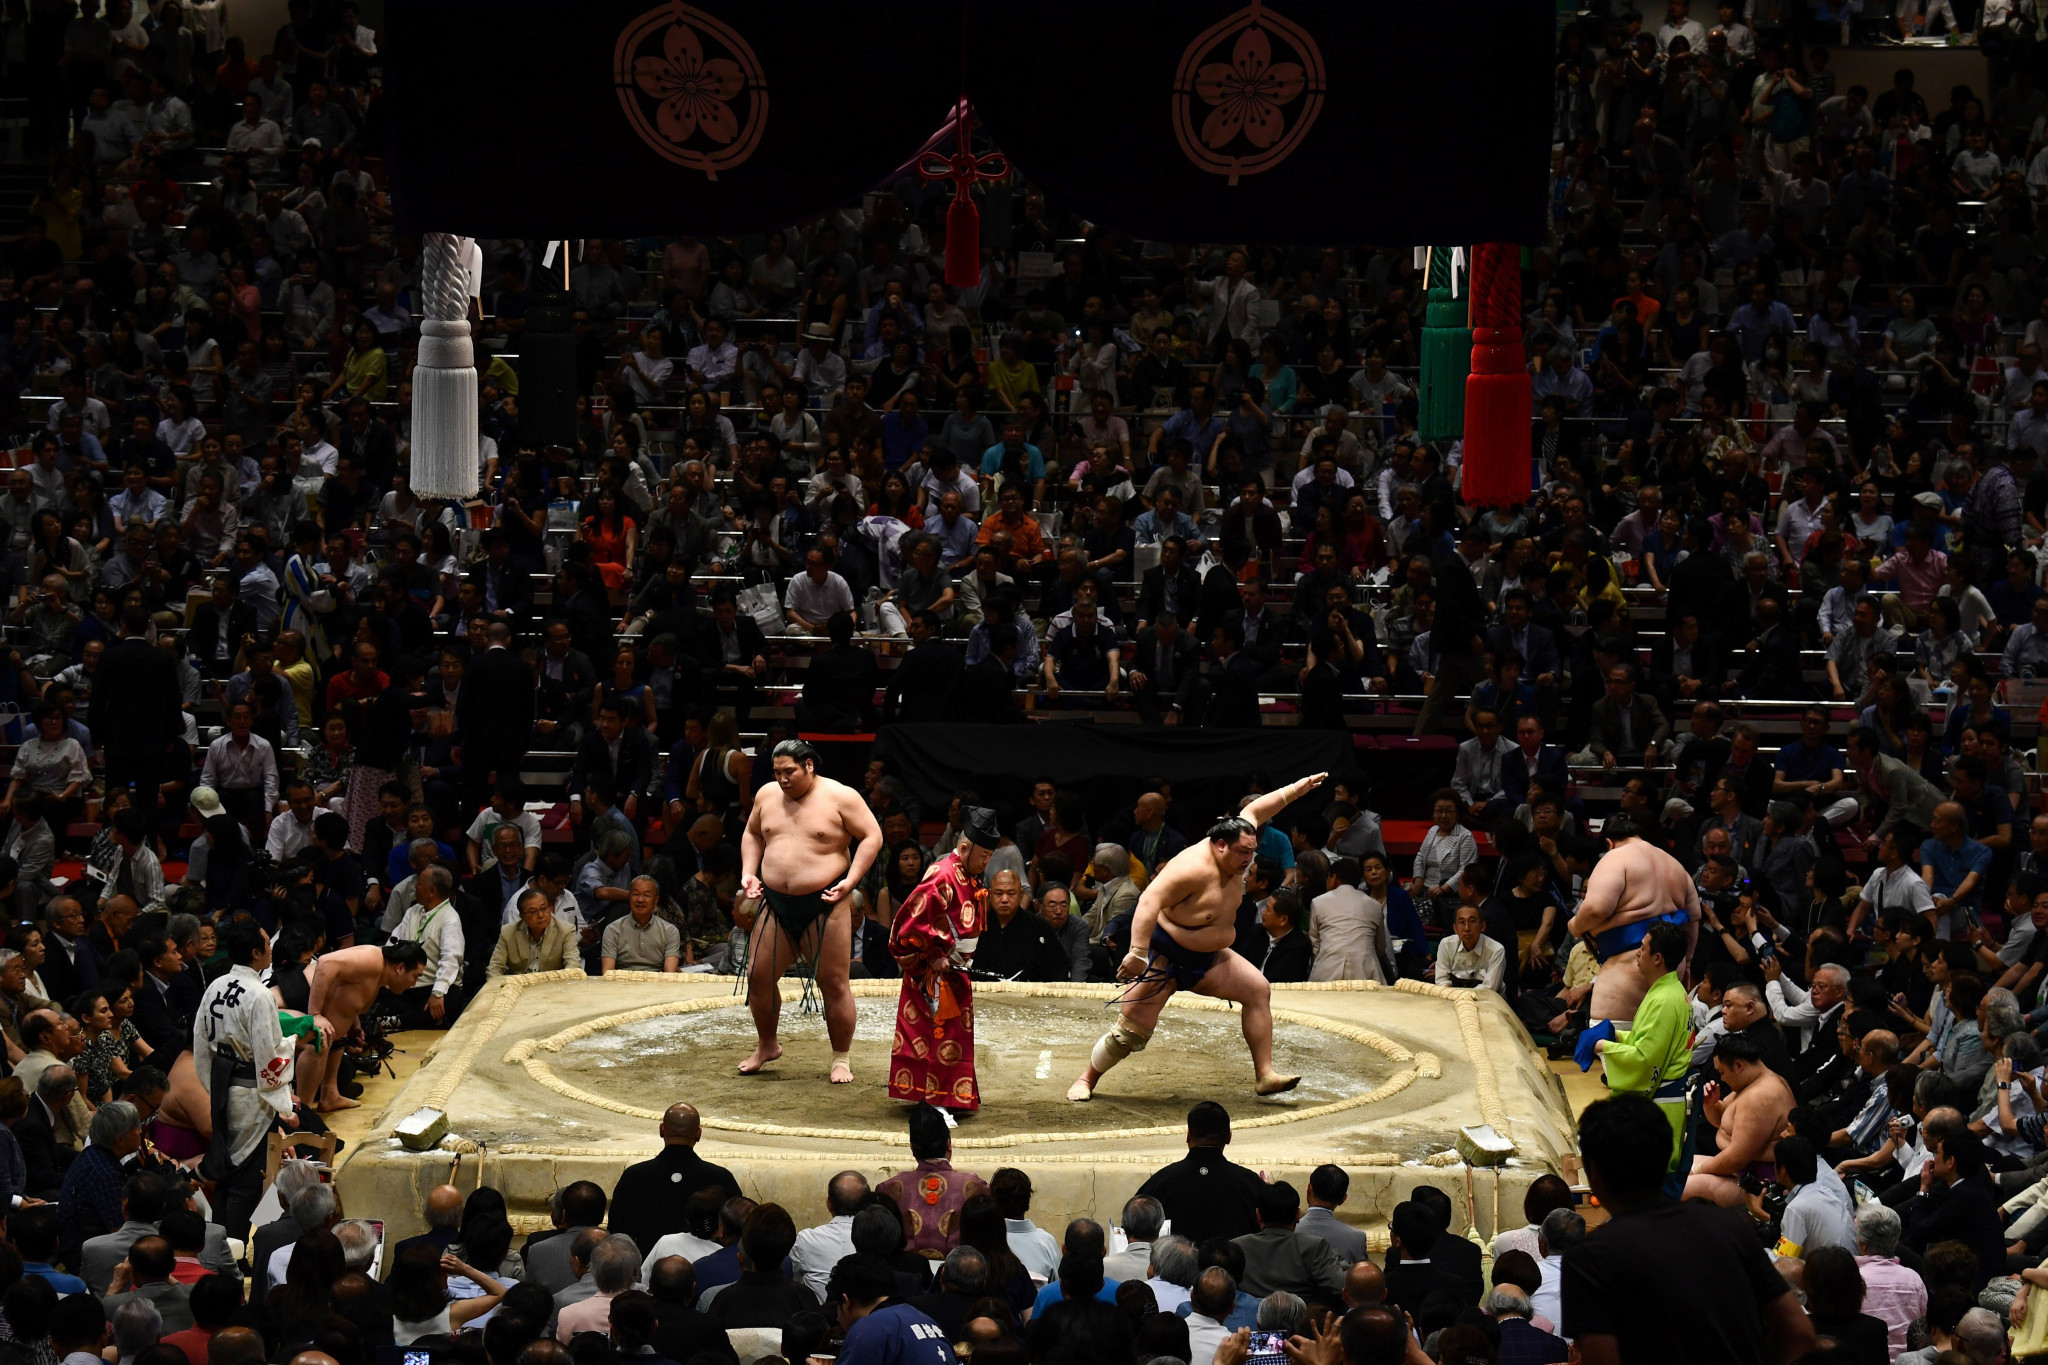 Fans to be allowed into Japanese sumo tournament in Tokyo